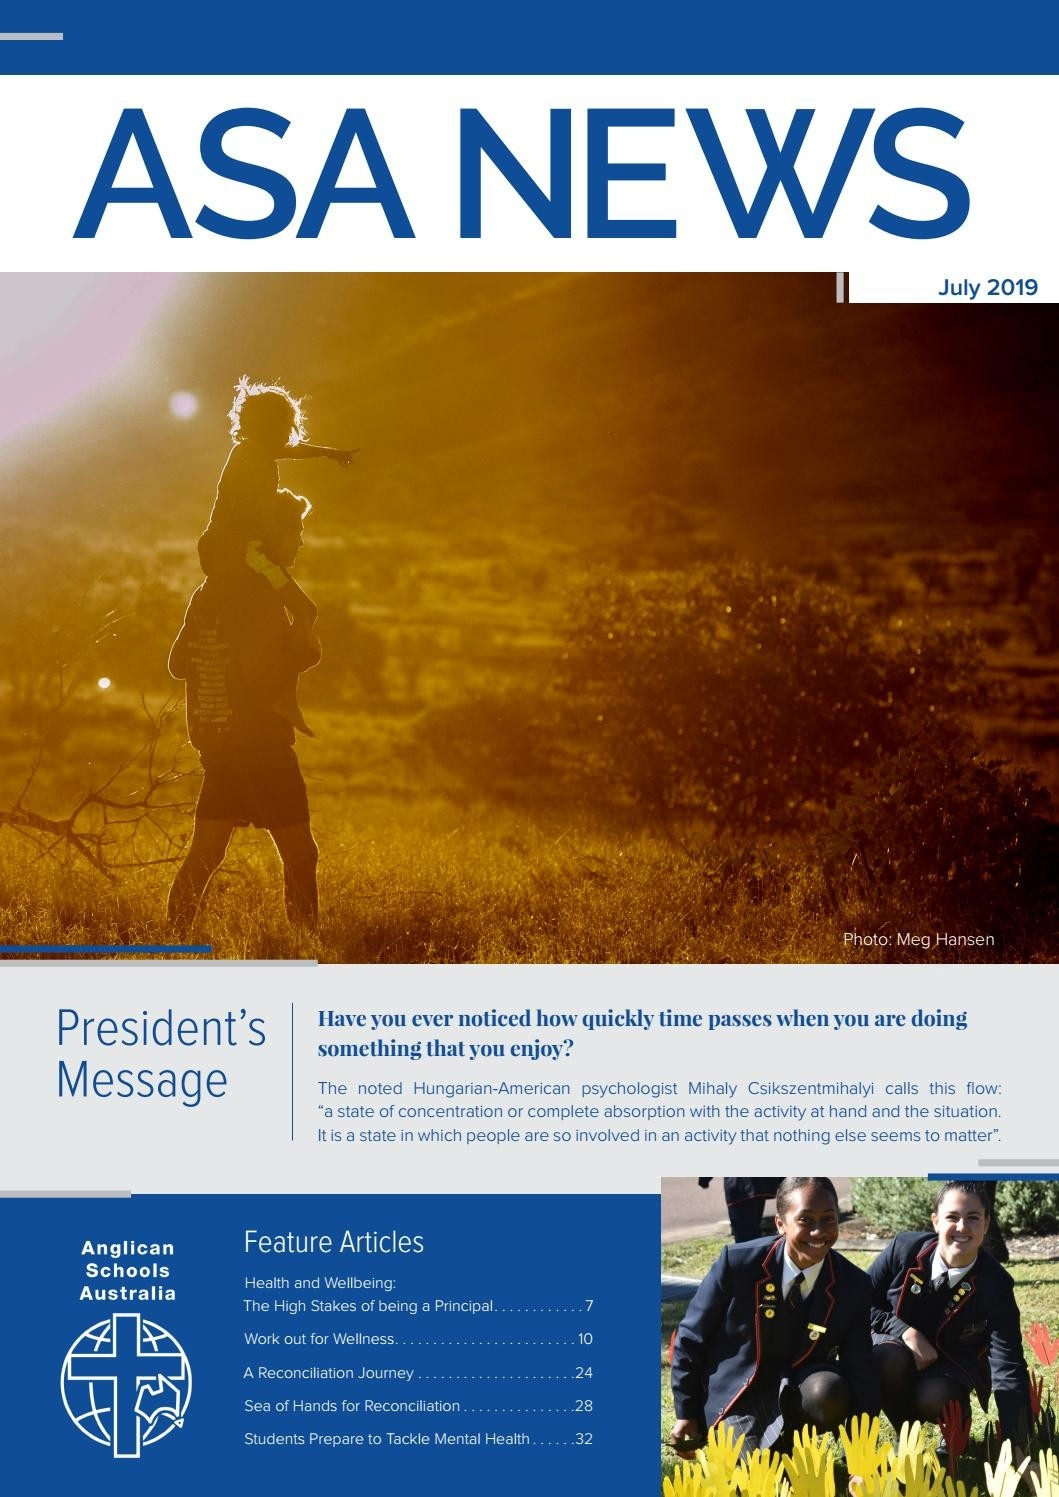 Asa News July Newsletter By Scotts - Issuu-Lowther Hall School Holidays